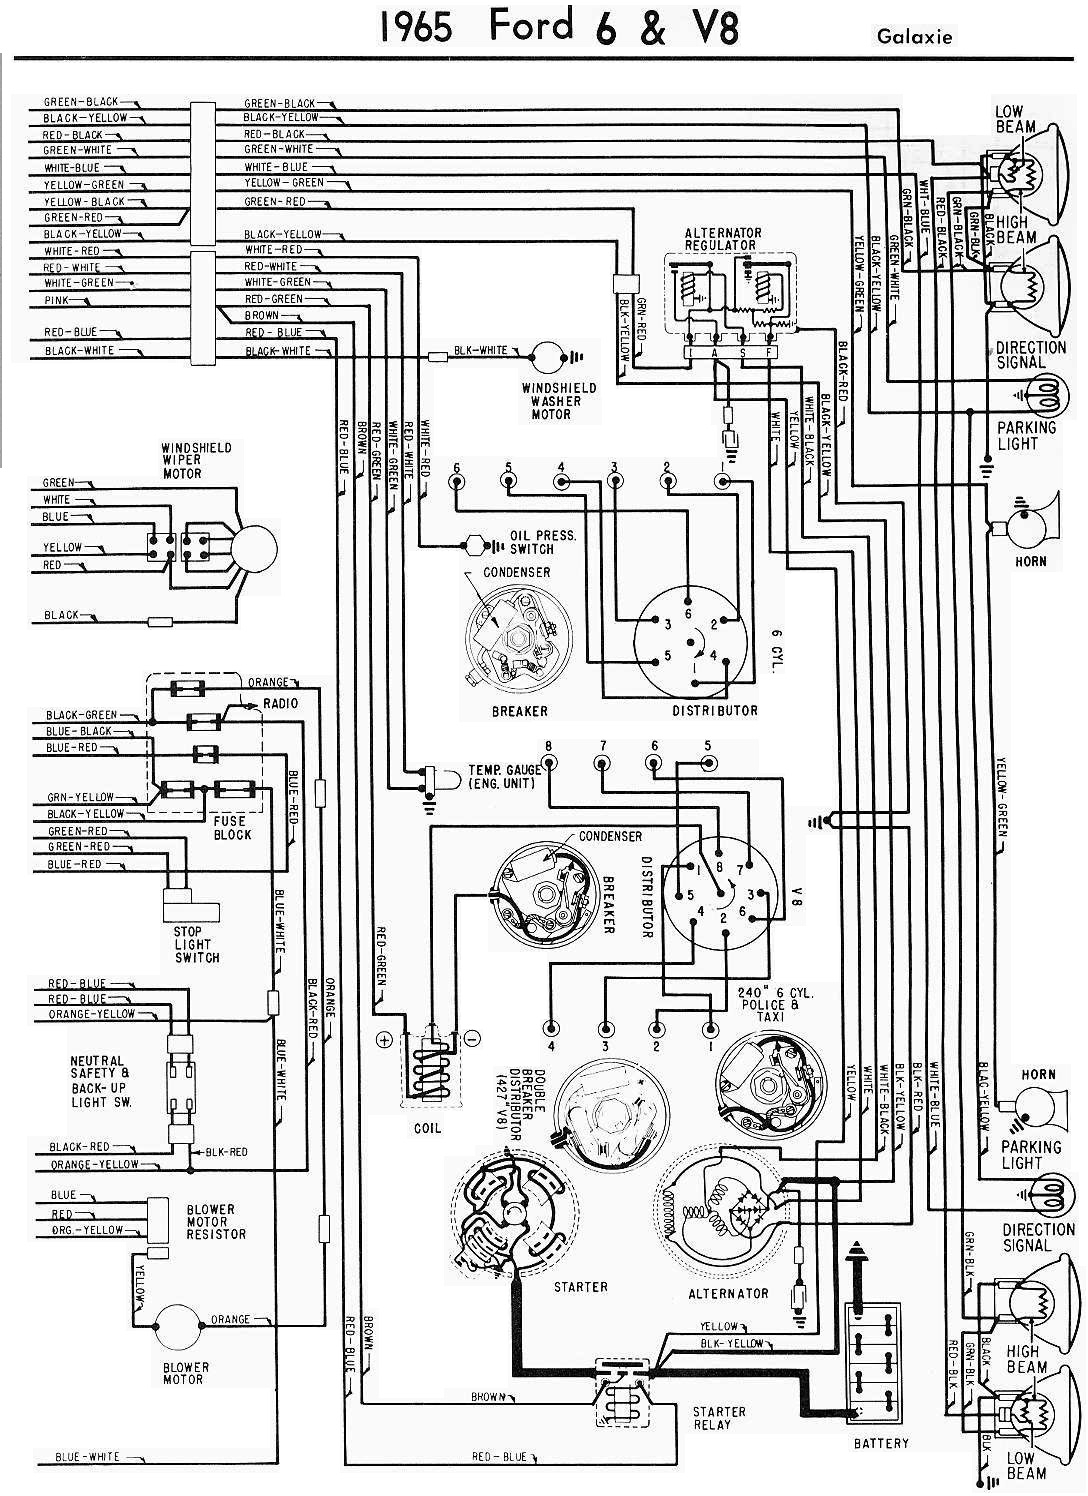 Ford Galaxie  plete Electrical Wiring Diagram Part on 1963 ford f100 wiring diagram